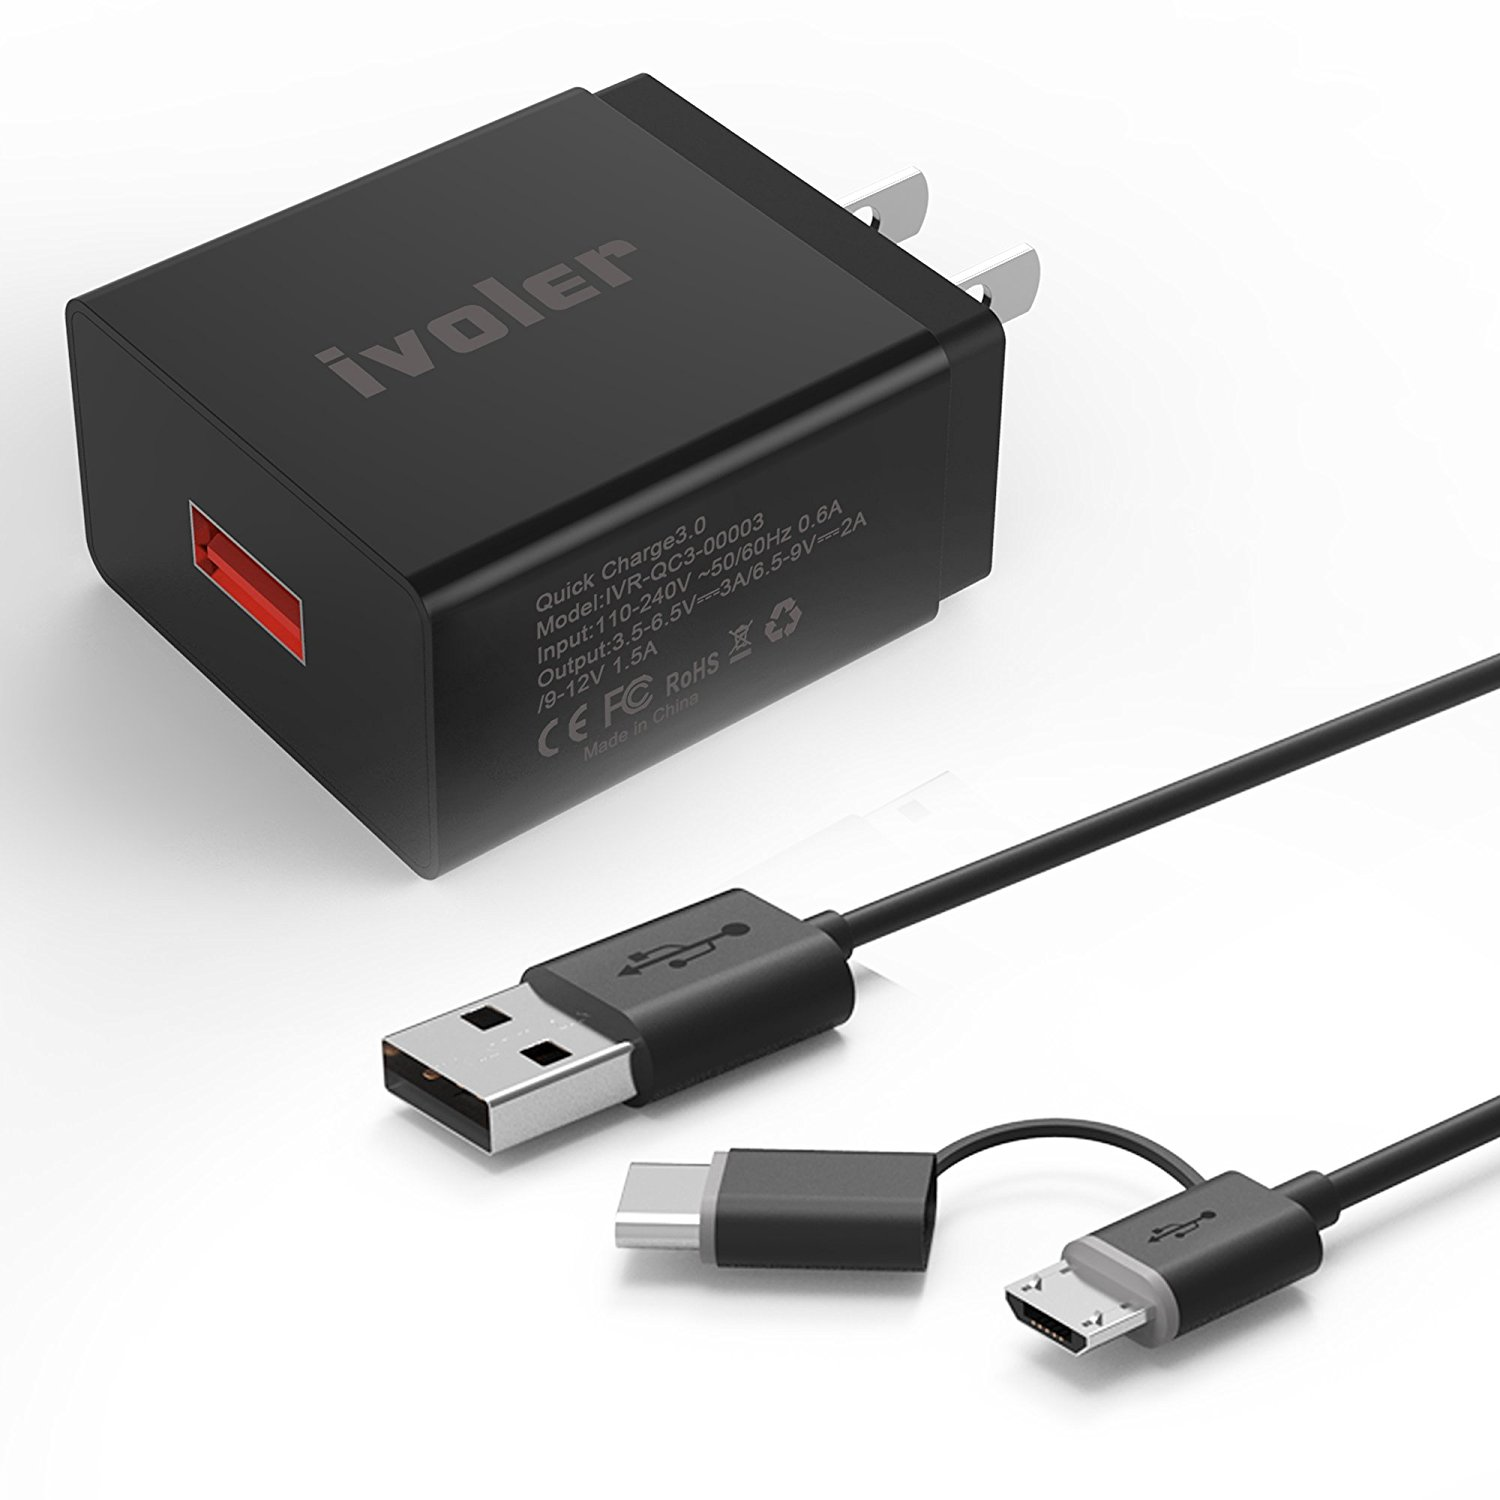 iVoler Quick Charge 3.0 USB Type C Adaptive Fast Charging Wall Charger with 2-in-1 Micro USB & Type C Cable for Samsung Galaxy S7/Edge/S6/Edge/Plus/Note 5, LG G5/V20, HTC 10 and More - Black